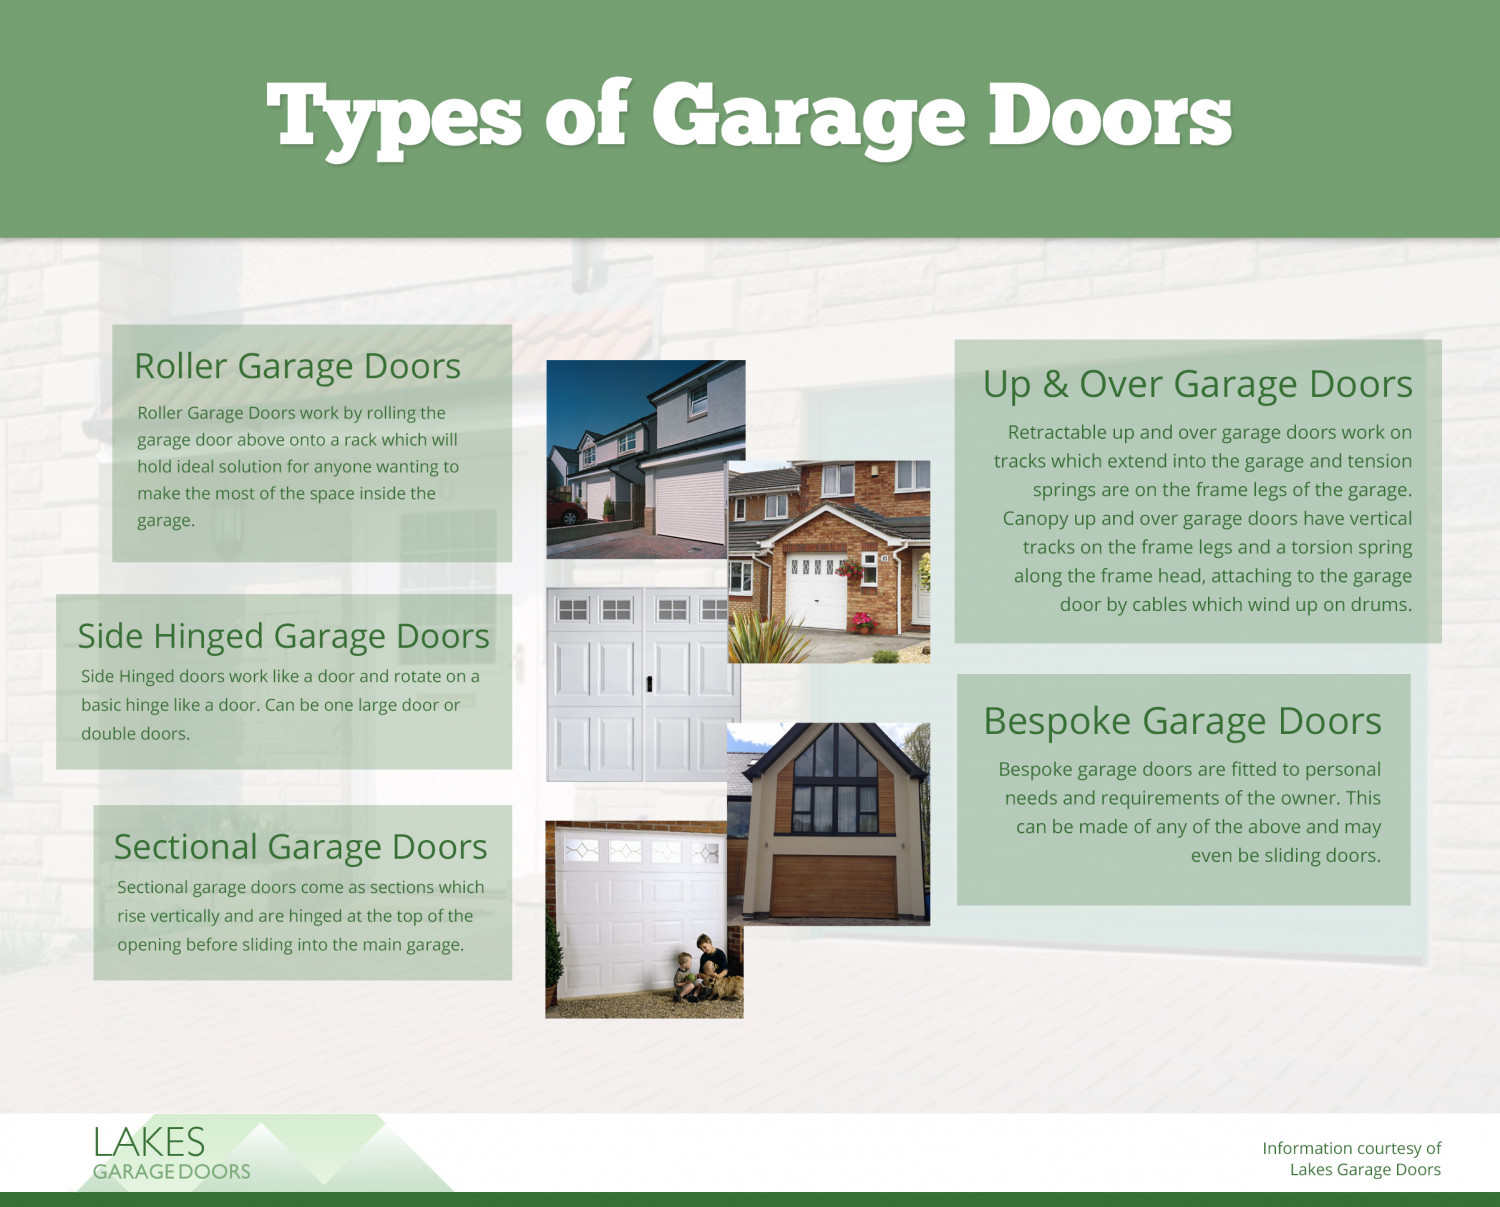 Decorating door types pics : Types of Garage Door | Visual.ly